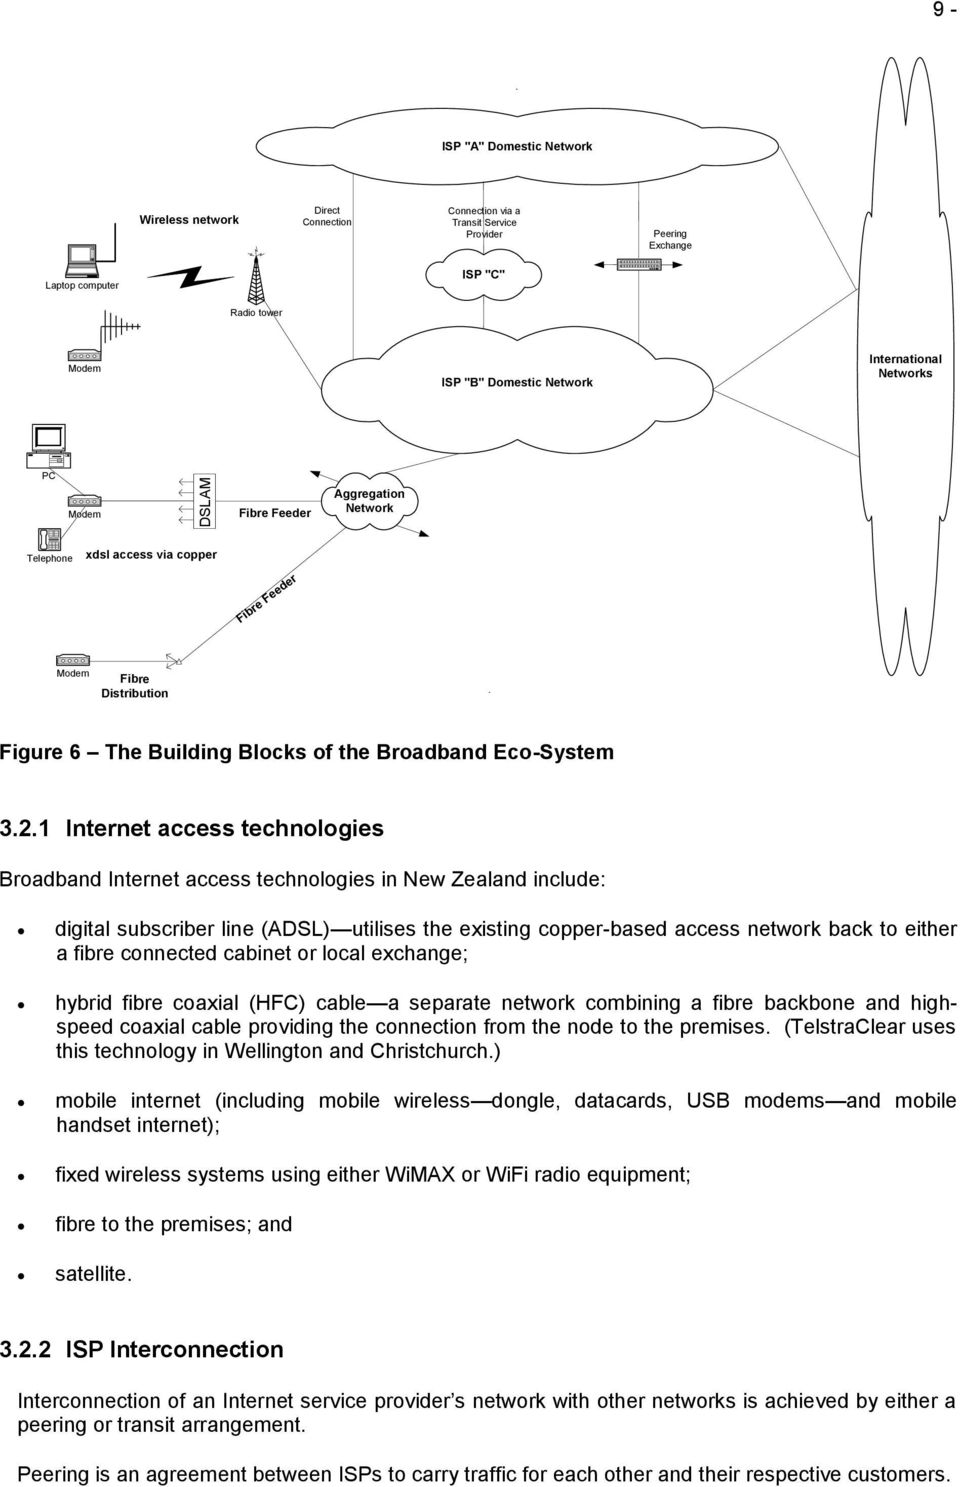 Networks PC Modem Fibre Feeder Aggregation Network Telephone xdsl access via copper Fibre Feeder Modem Fibre Distribution. Figure 6 The Building Blocks of the Broadband Eco-System 3.2.